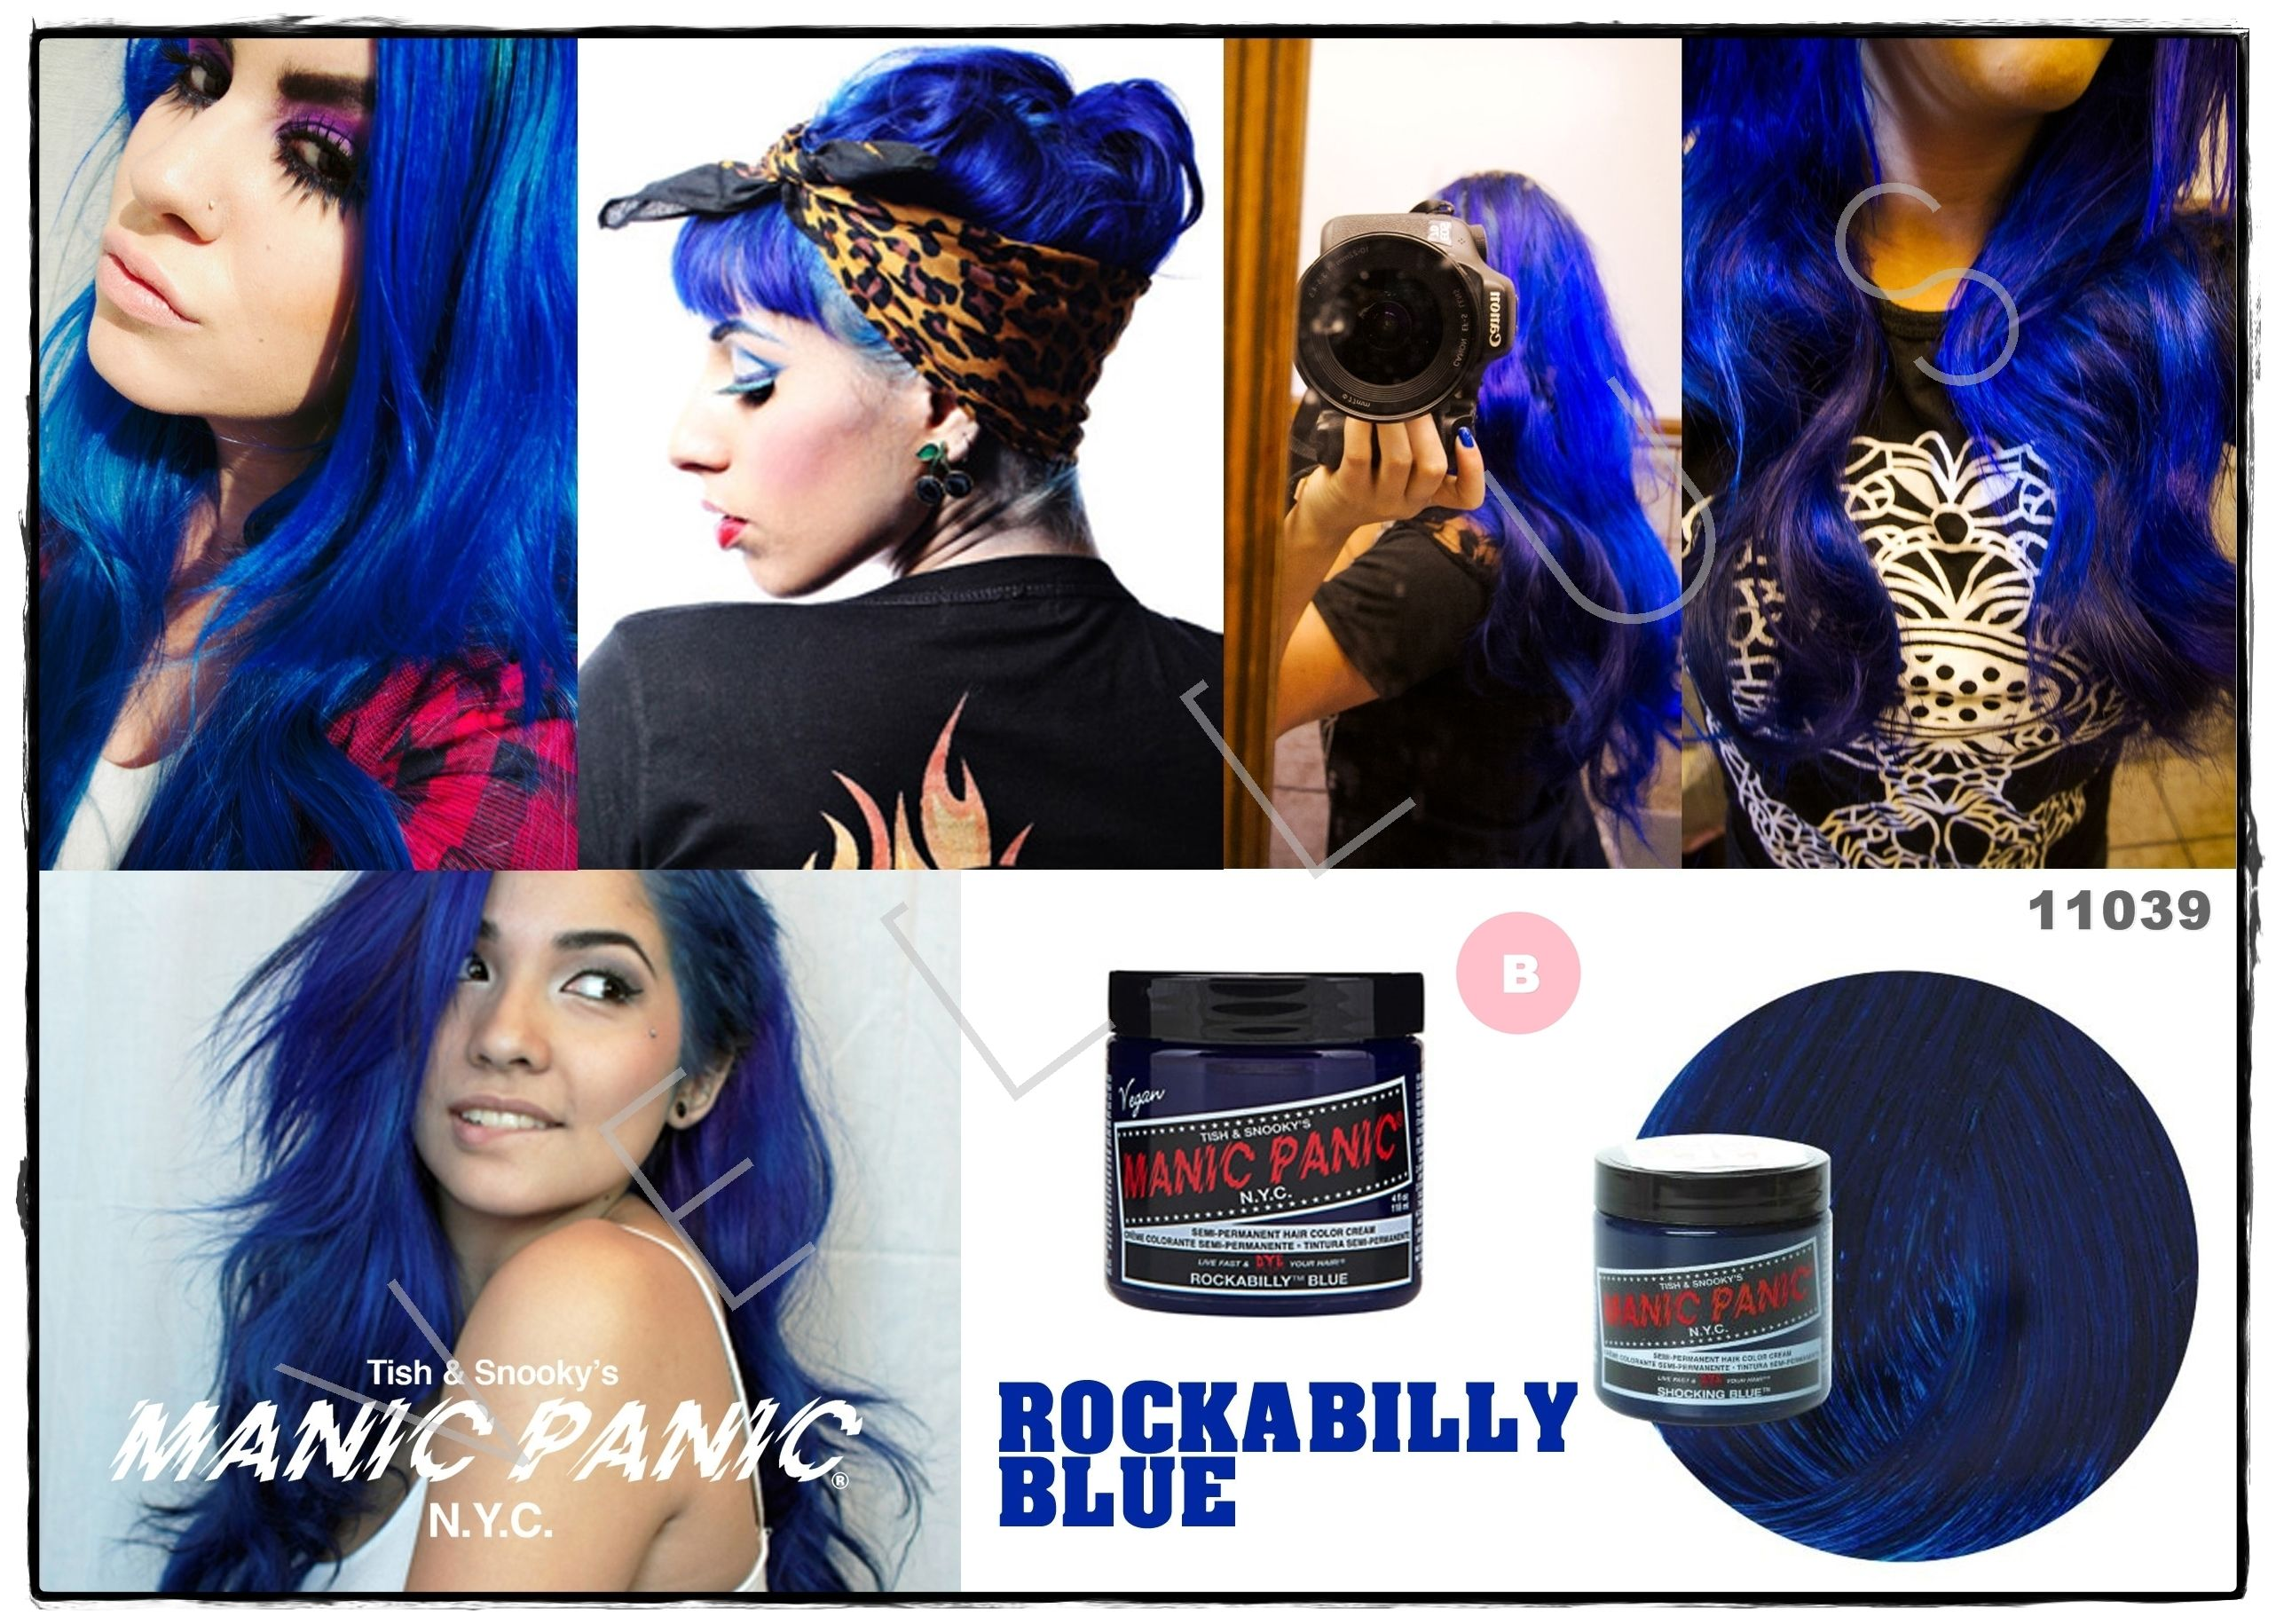 Manic Panic Purple Haze Over Unbleached Hair Manic Panic Rockabilly Blue Over Bleached Hair Manic Panic Dye My Hair Bleached Hair Manic Panic Purple Haze